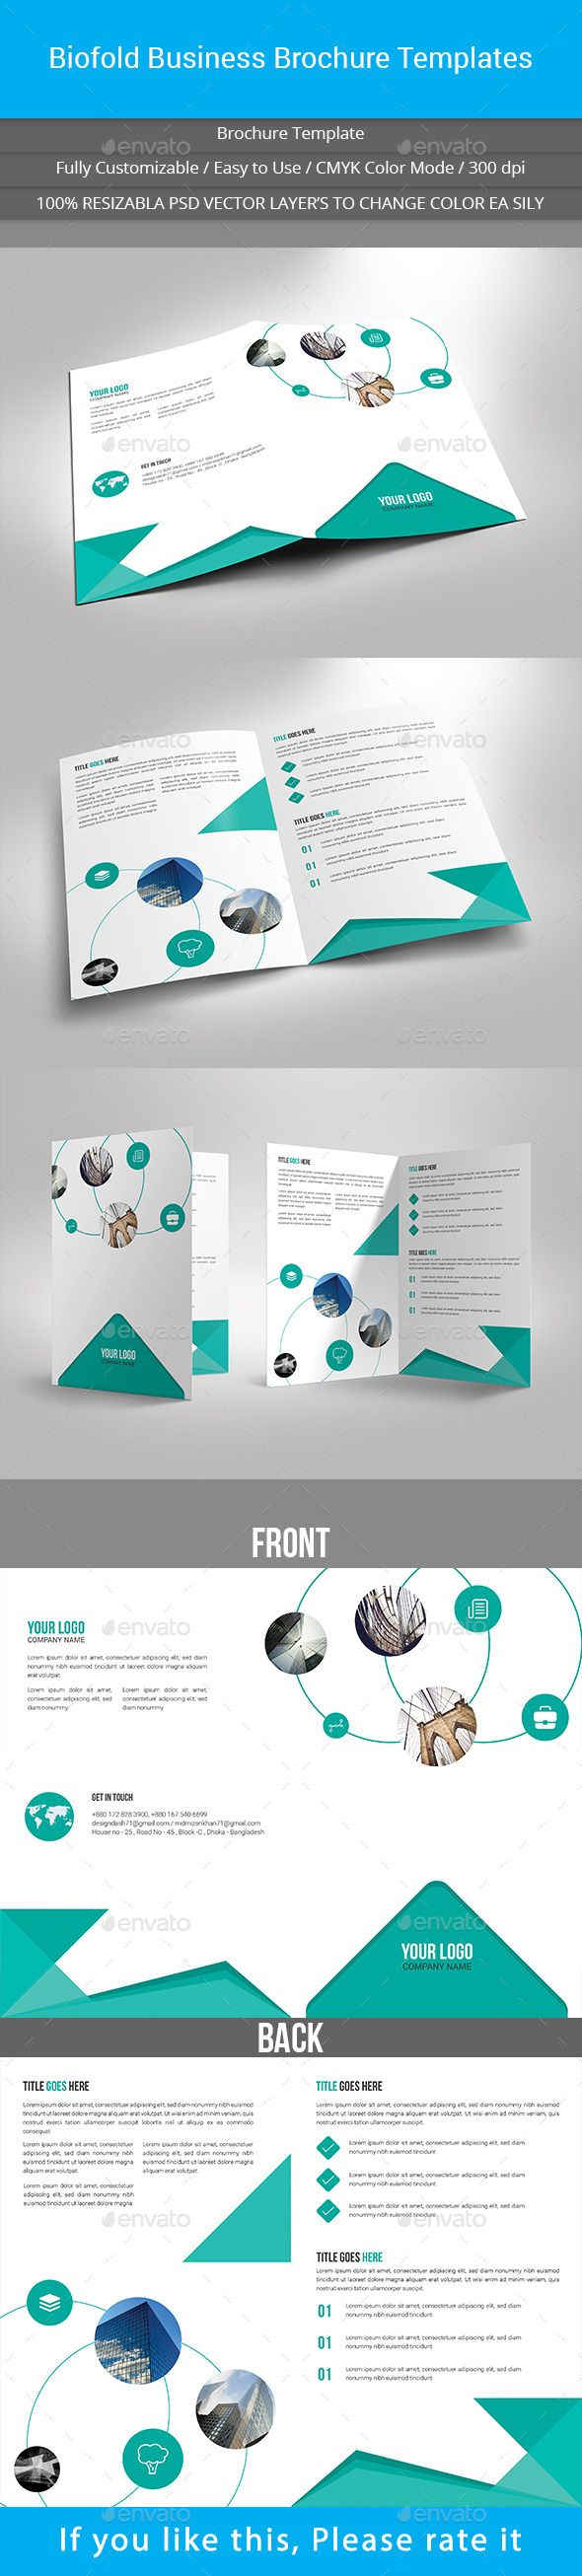 Biofold Business Brochure Templates #brochure Download: graphicriver.net/...